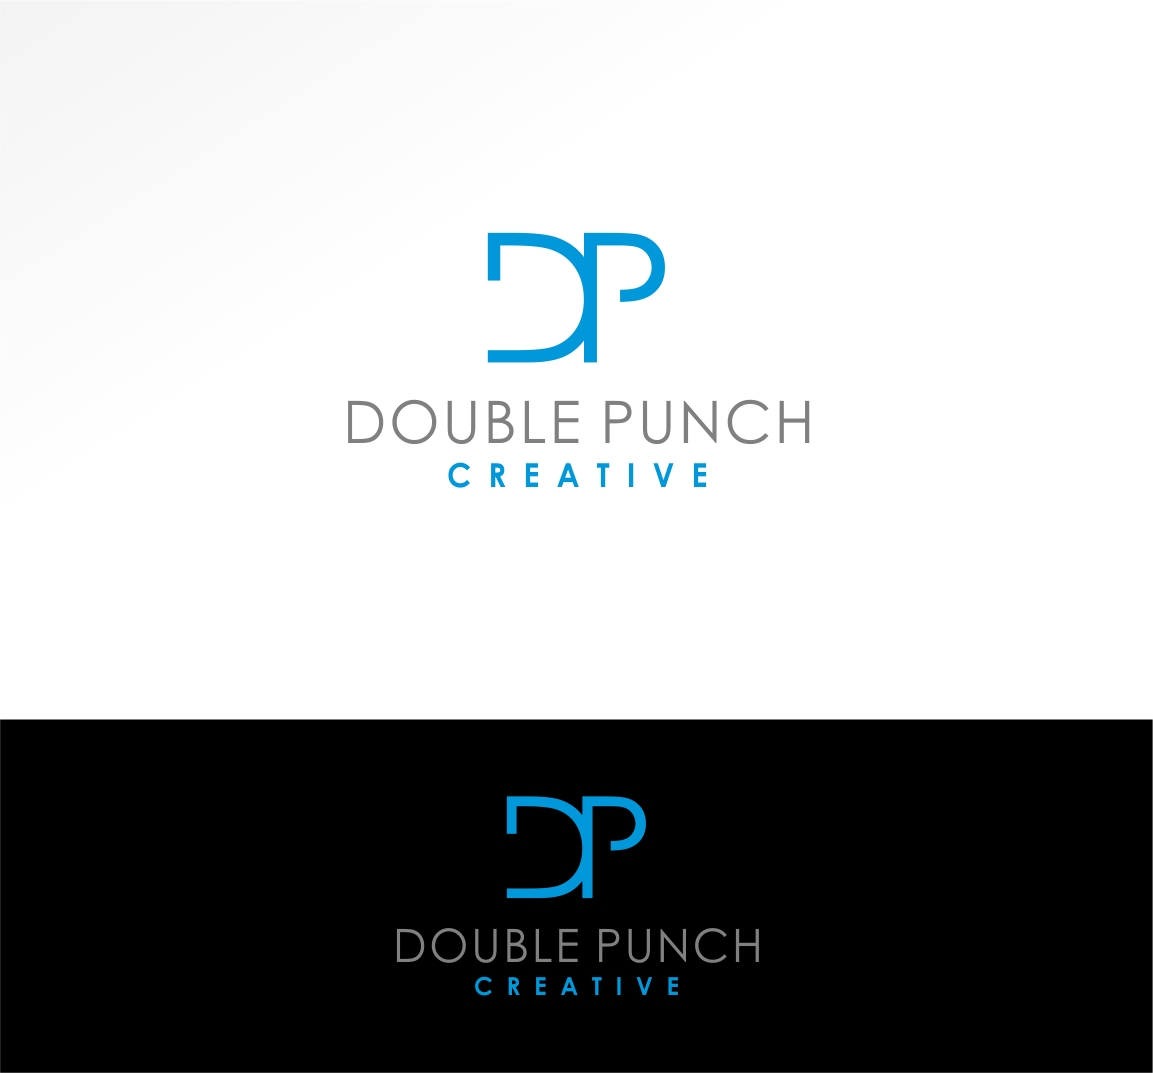 Logo Design by haidu - Entry No. 146 in the Logo Design Contest Unique Logo Design Wanted for Double Punch Creative.